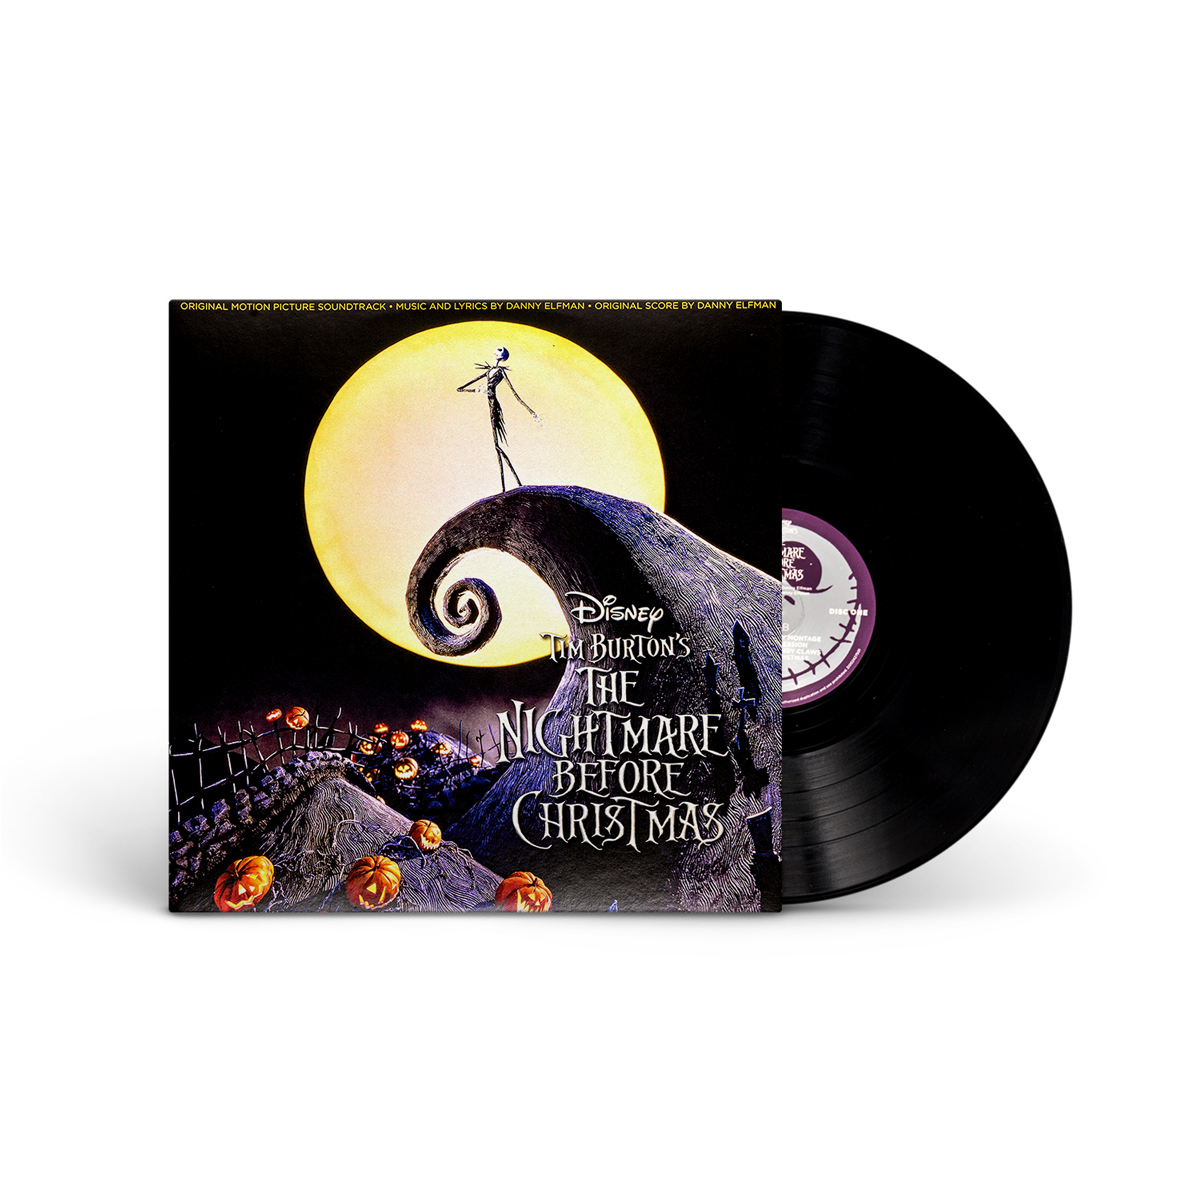 The Nightmare Before Christmas Black Vinyl